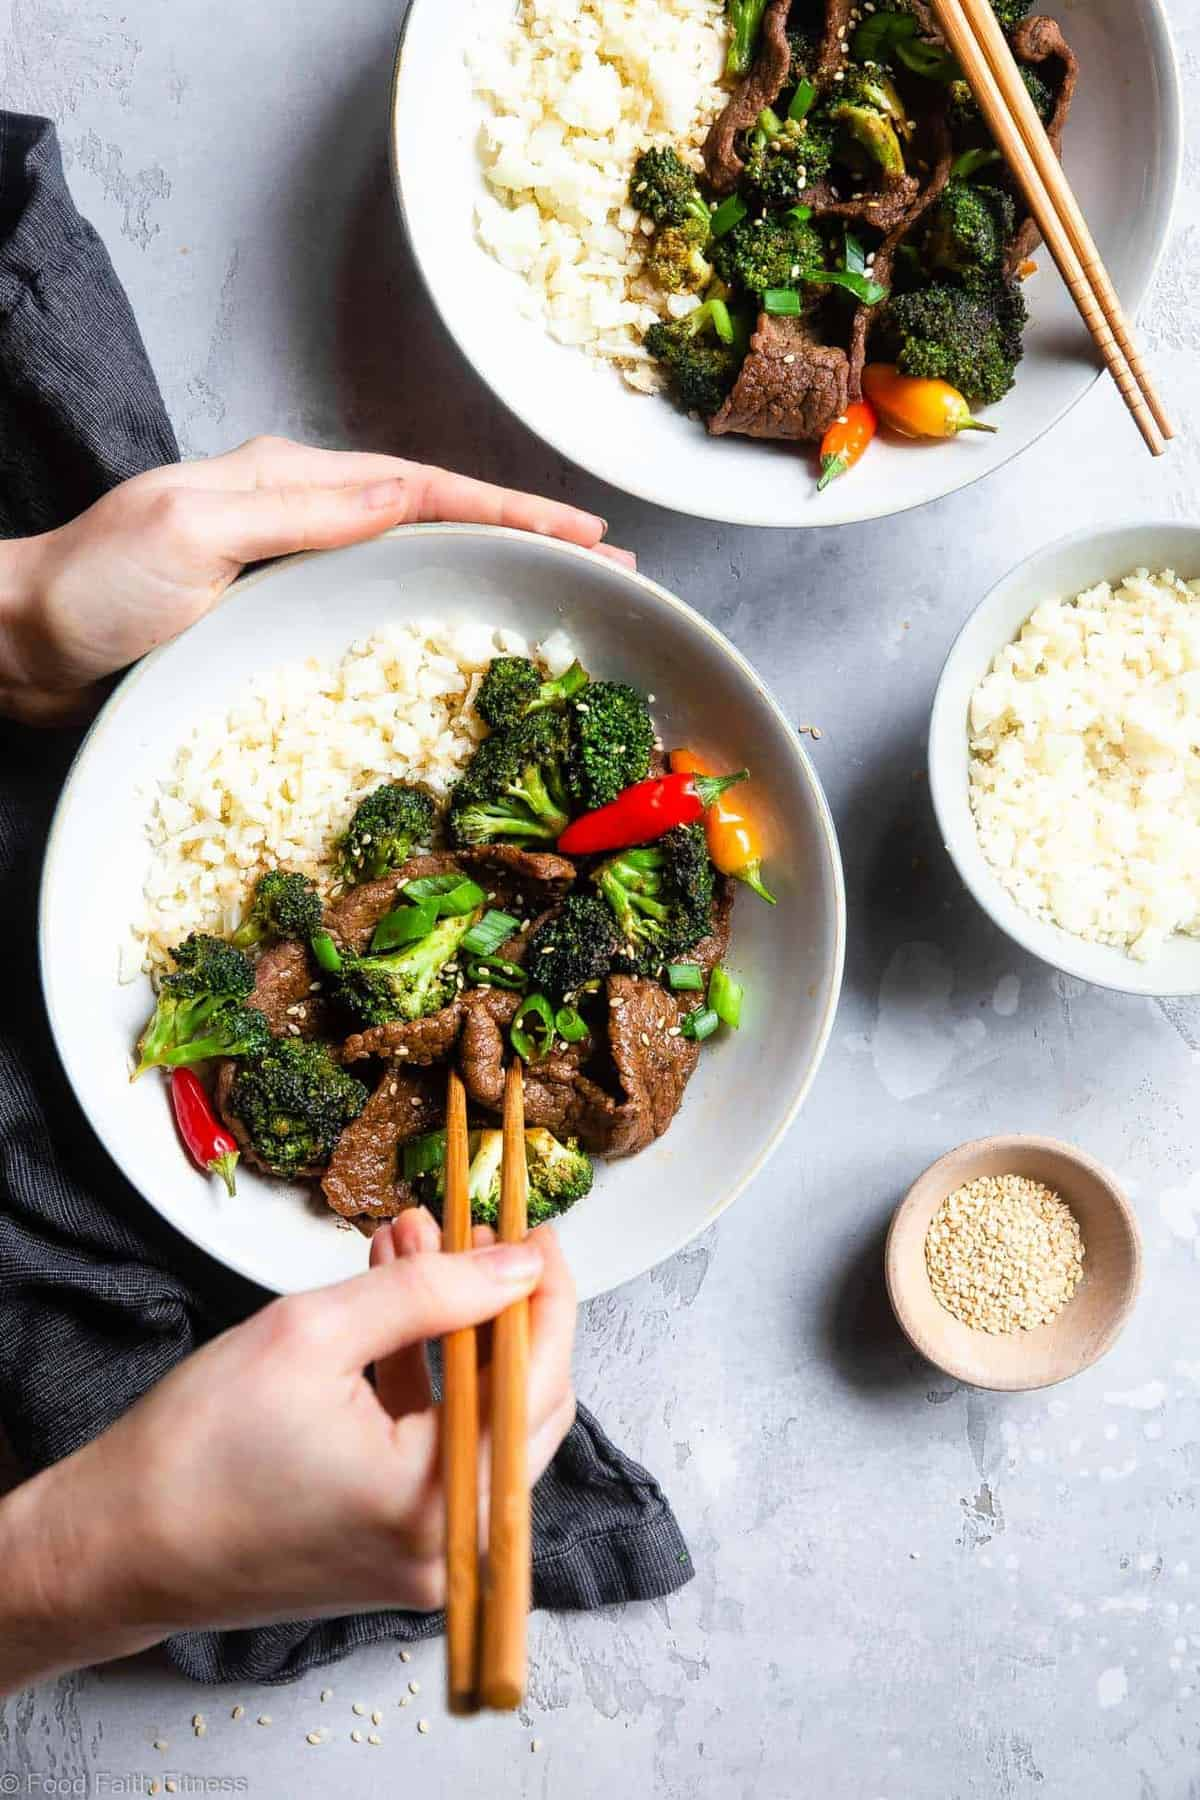 Easy Whole30 Low Carb Beef and Broccoli - This keto stir fry is an EASY, one-pot weeknight meal that even picky eaters will love! So much yummier and healthier than takeout too! | #Foodfaithfitness |